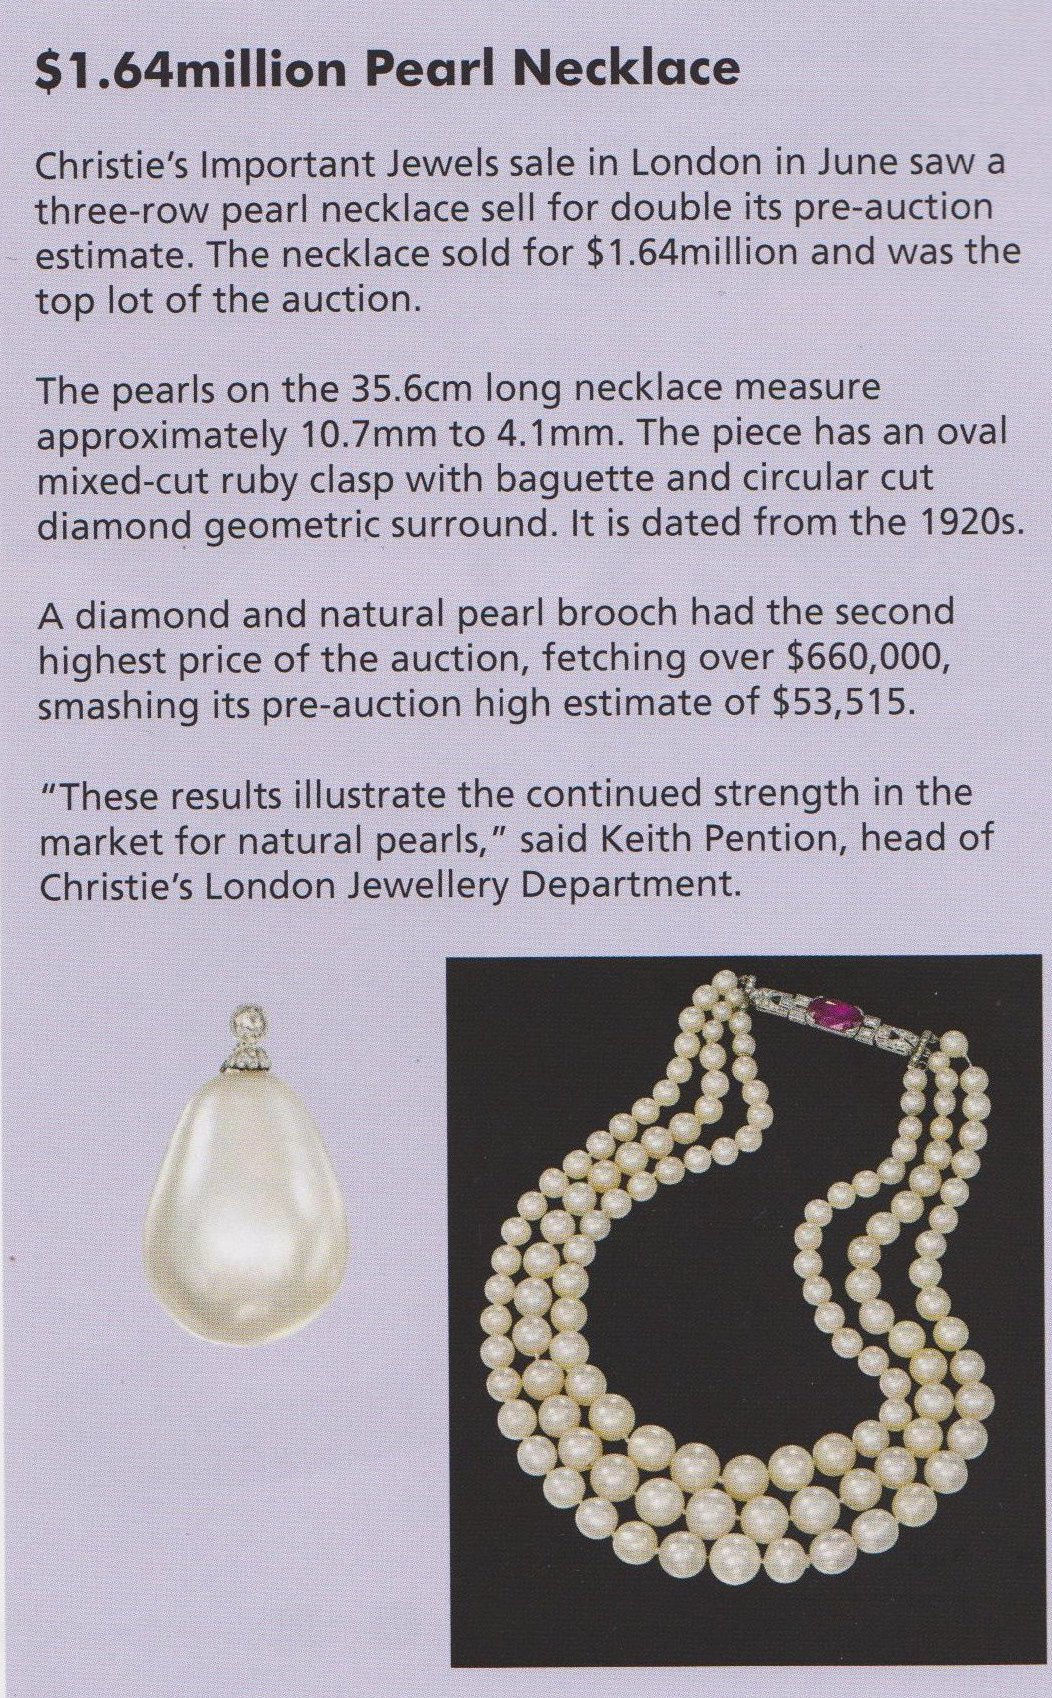 Natural Pearl Necklace sells for 1.64 M